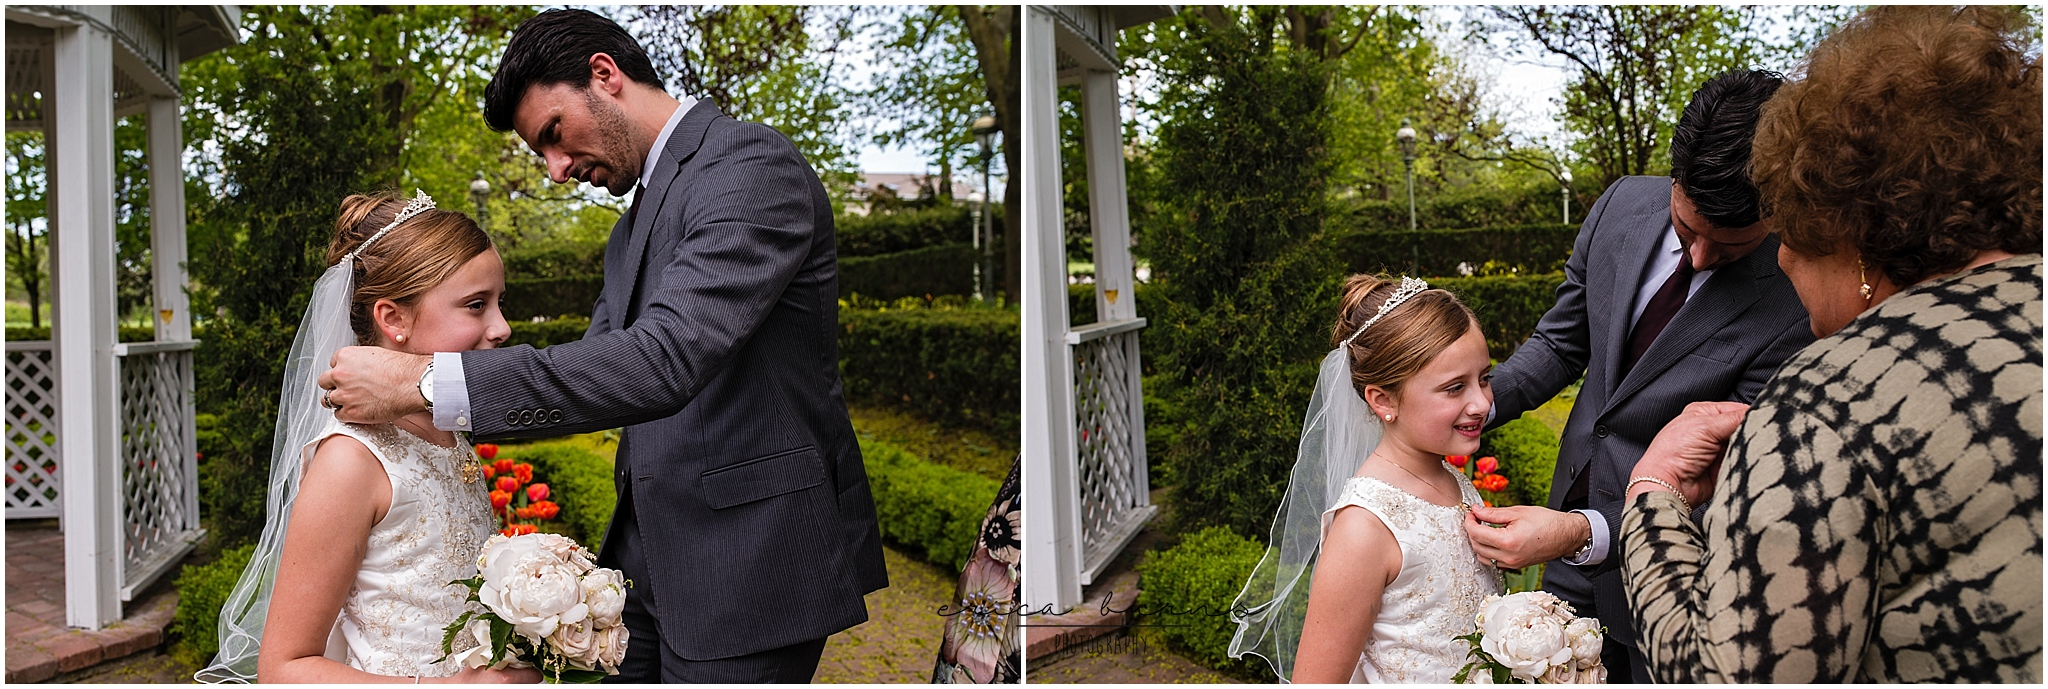 Erica Burns Photography | Long Island Photographer_0188.jpg